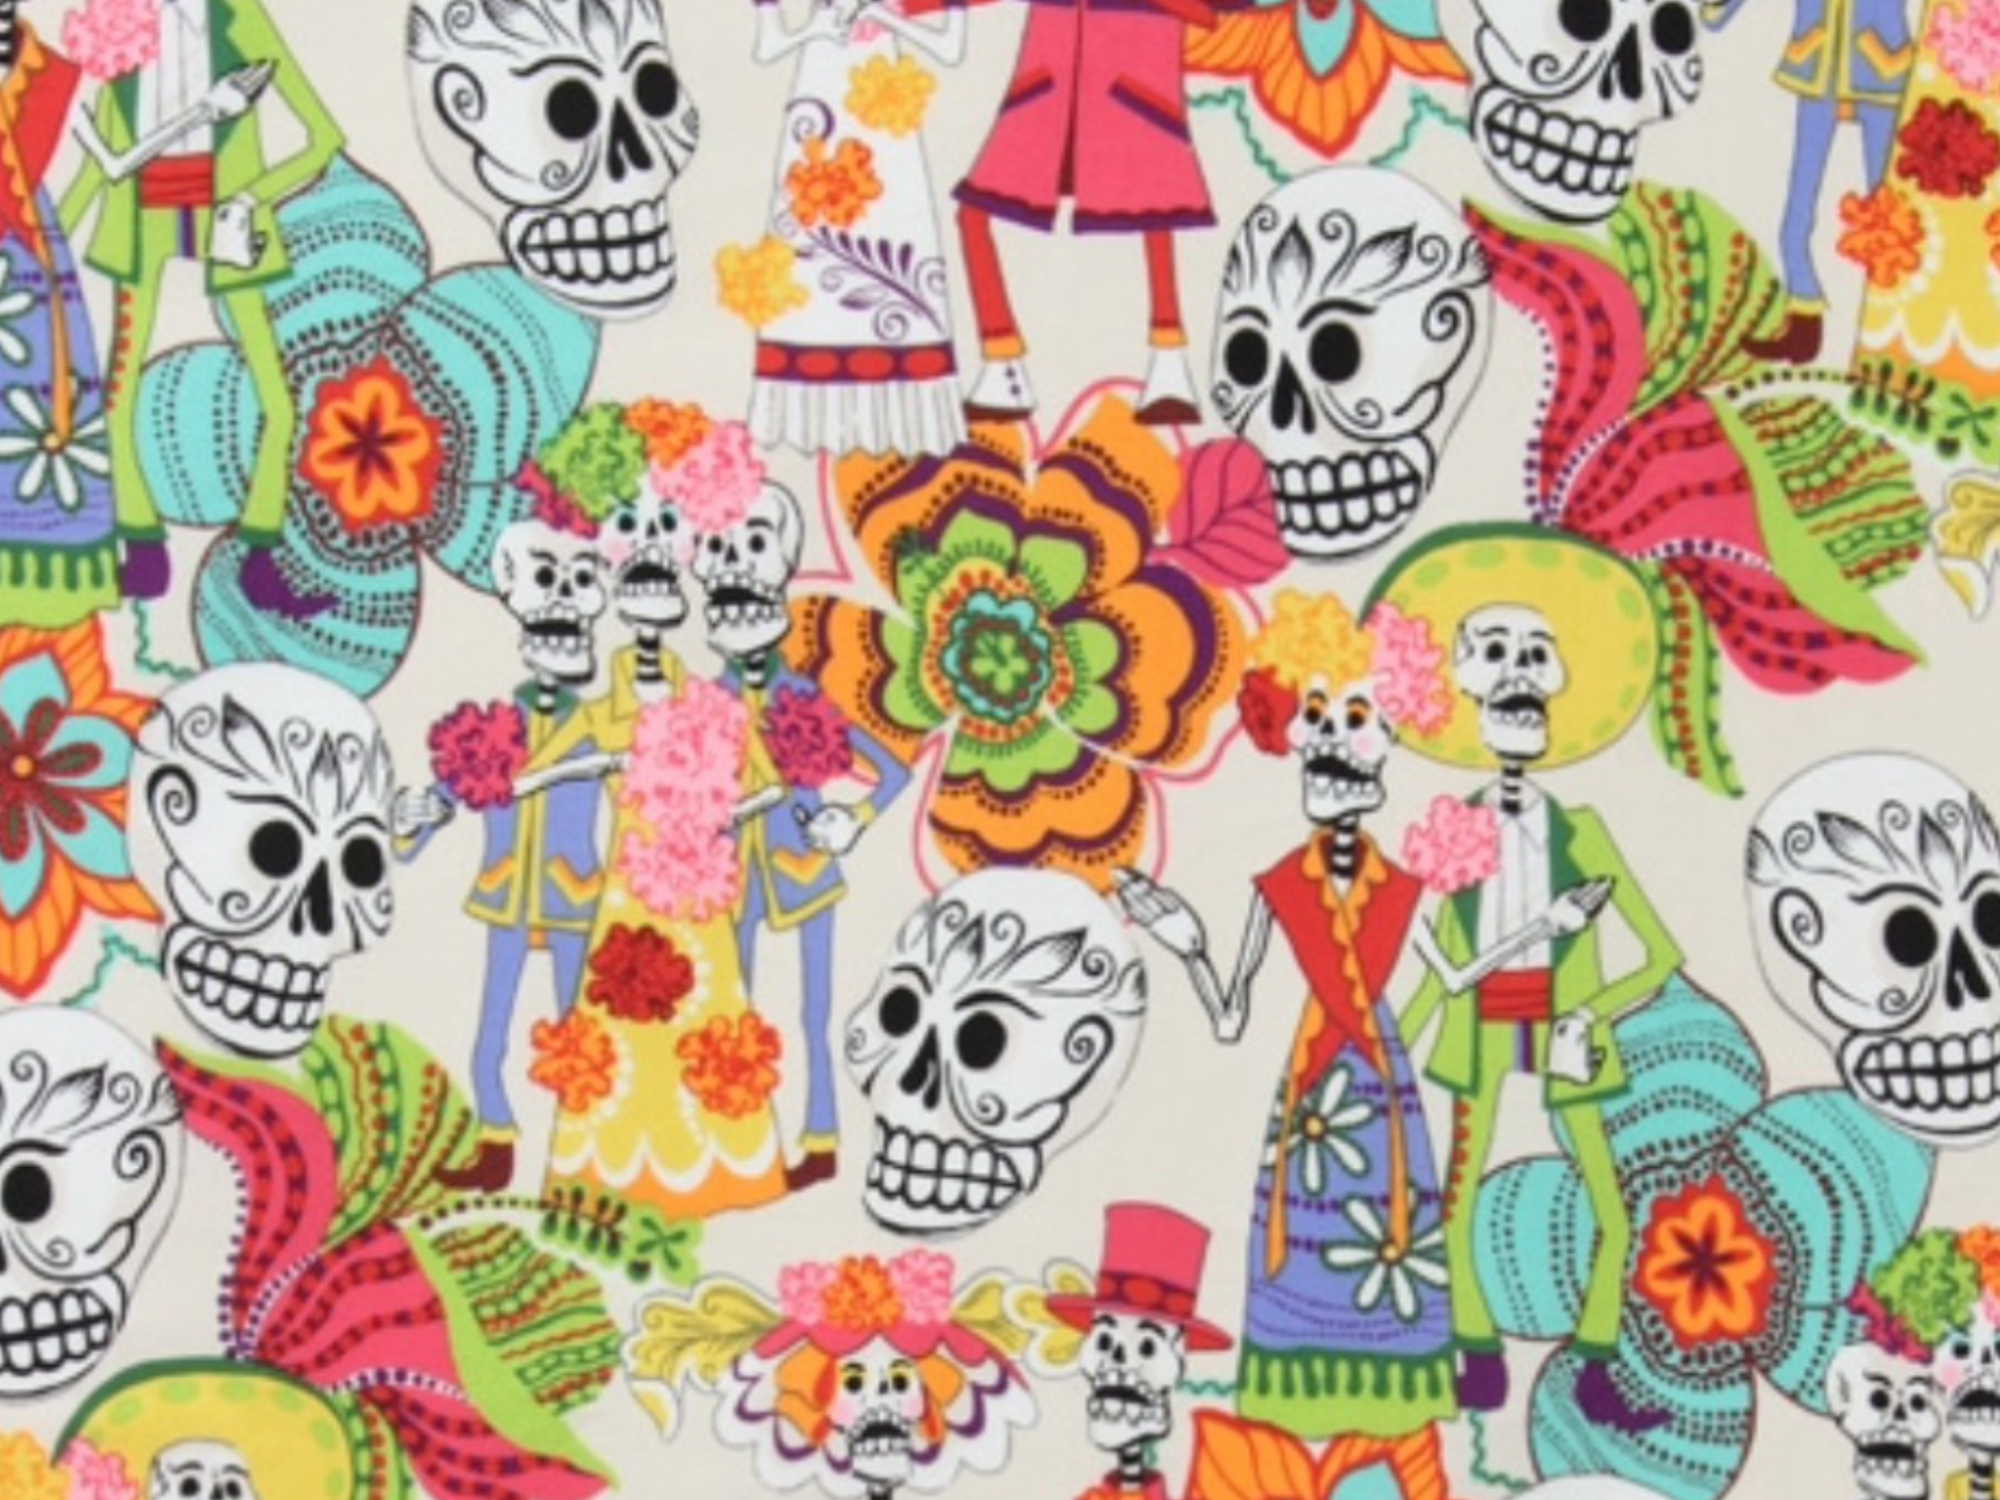 COMING SOON! Los Novios Skulls and Skeletons Day of the Dead Dia de los Muertos Wedding Posada Mexico Bride and Groom Cotton fabric Quilt fabric 551